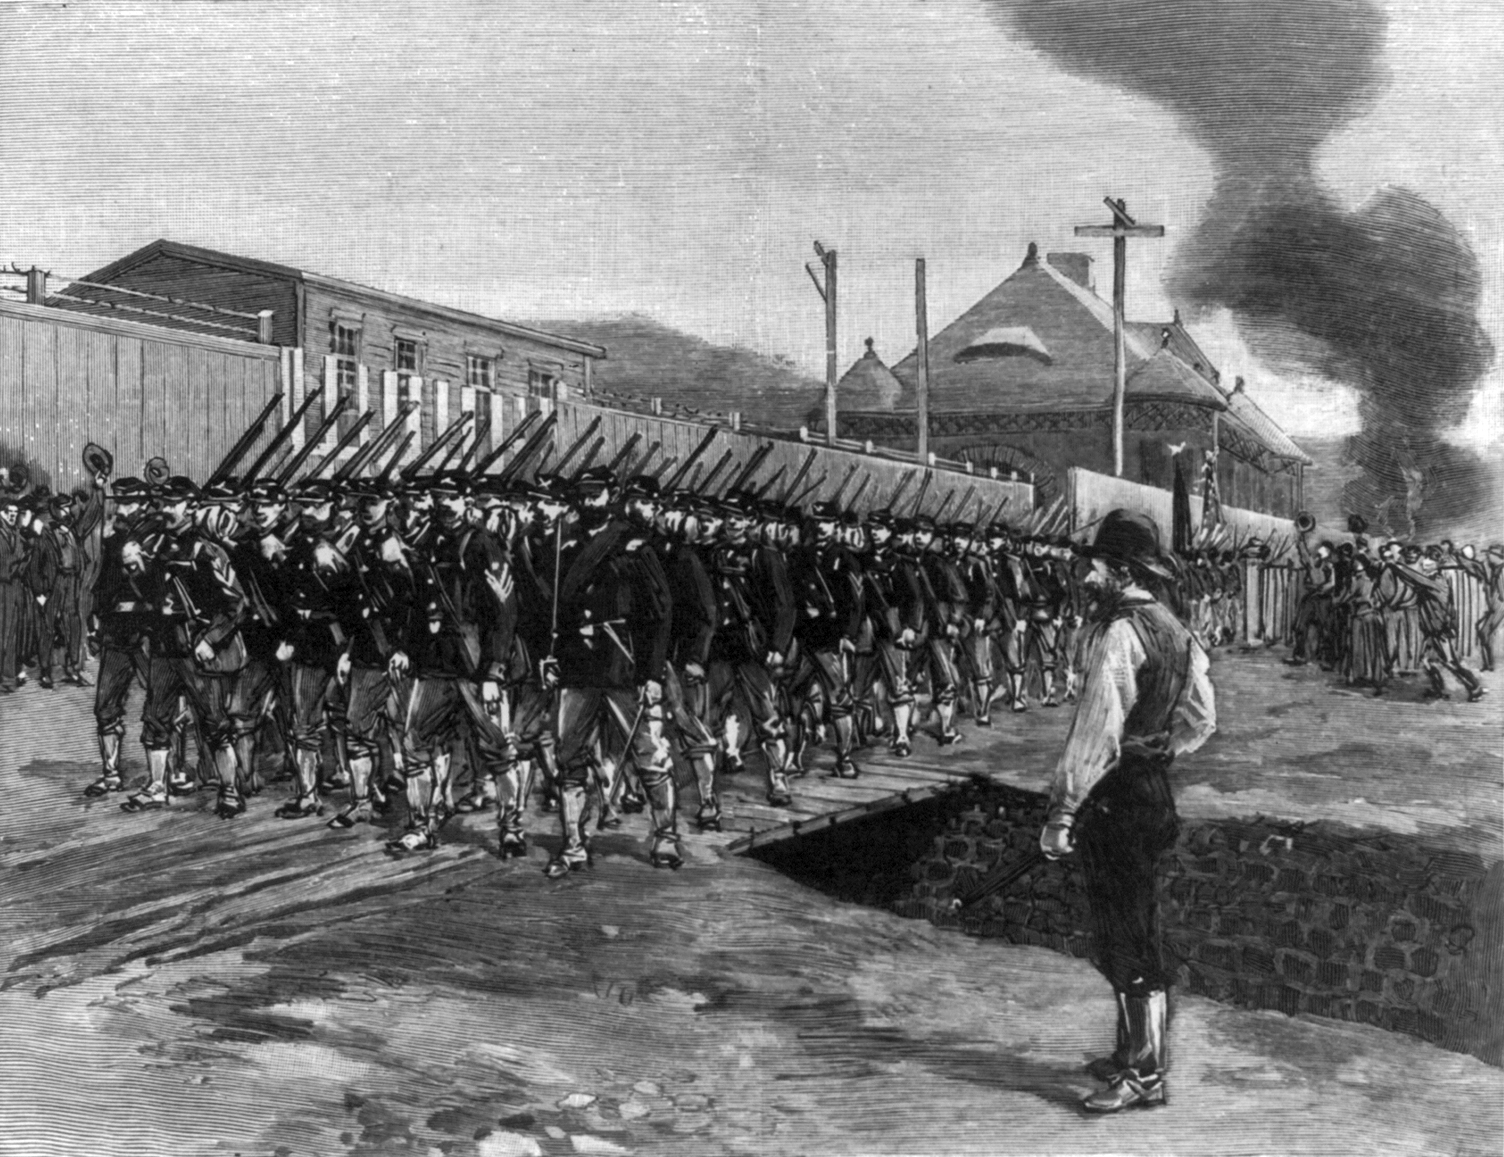 Homestead_Strike_-_18th_Regiment_arrives_cph.3b03430